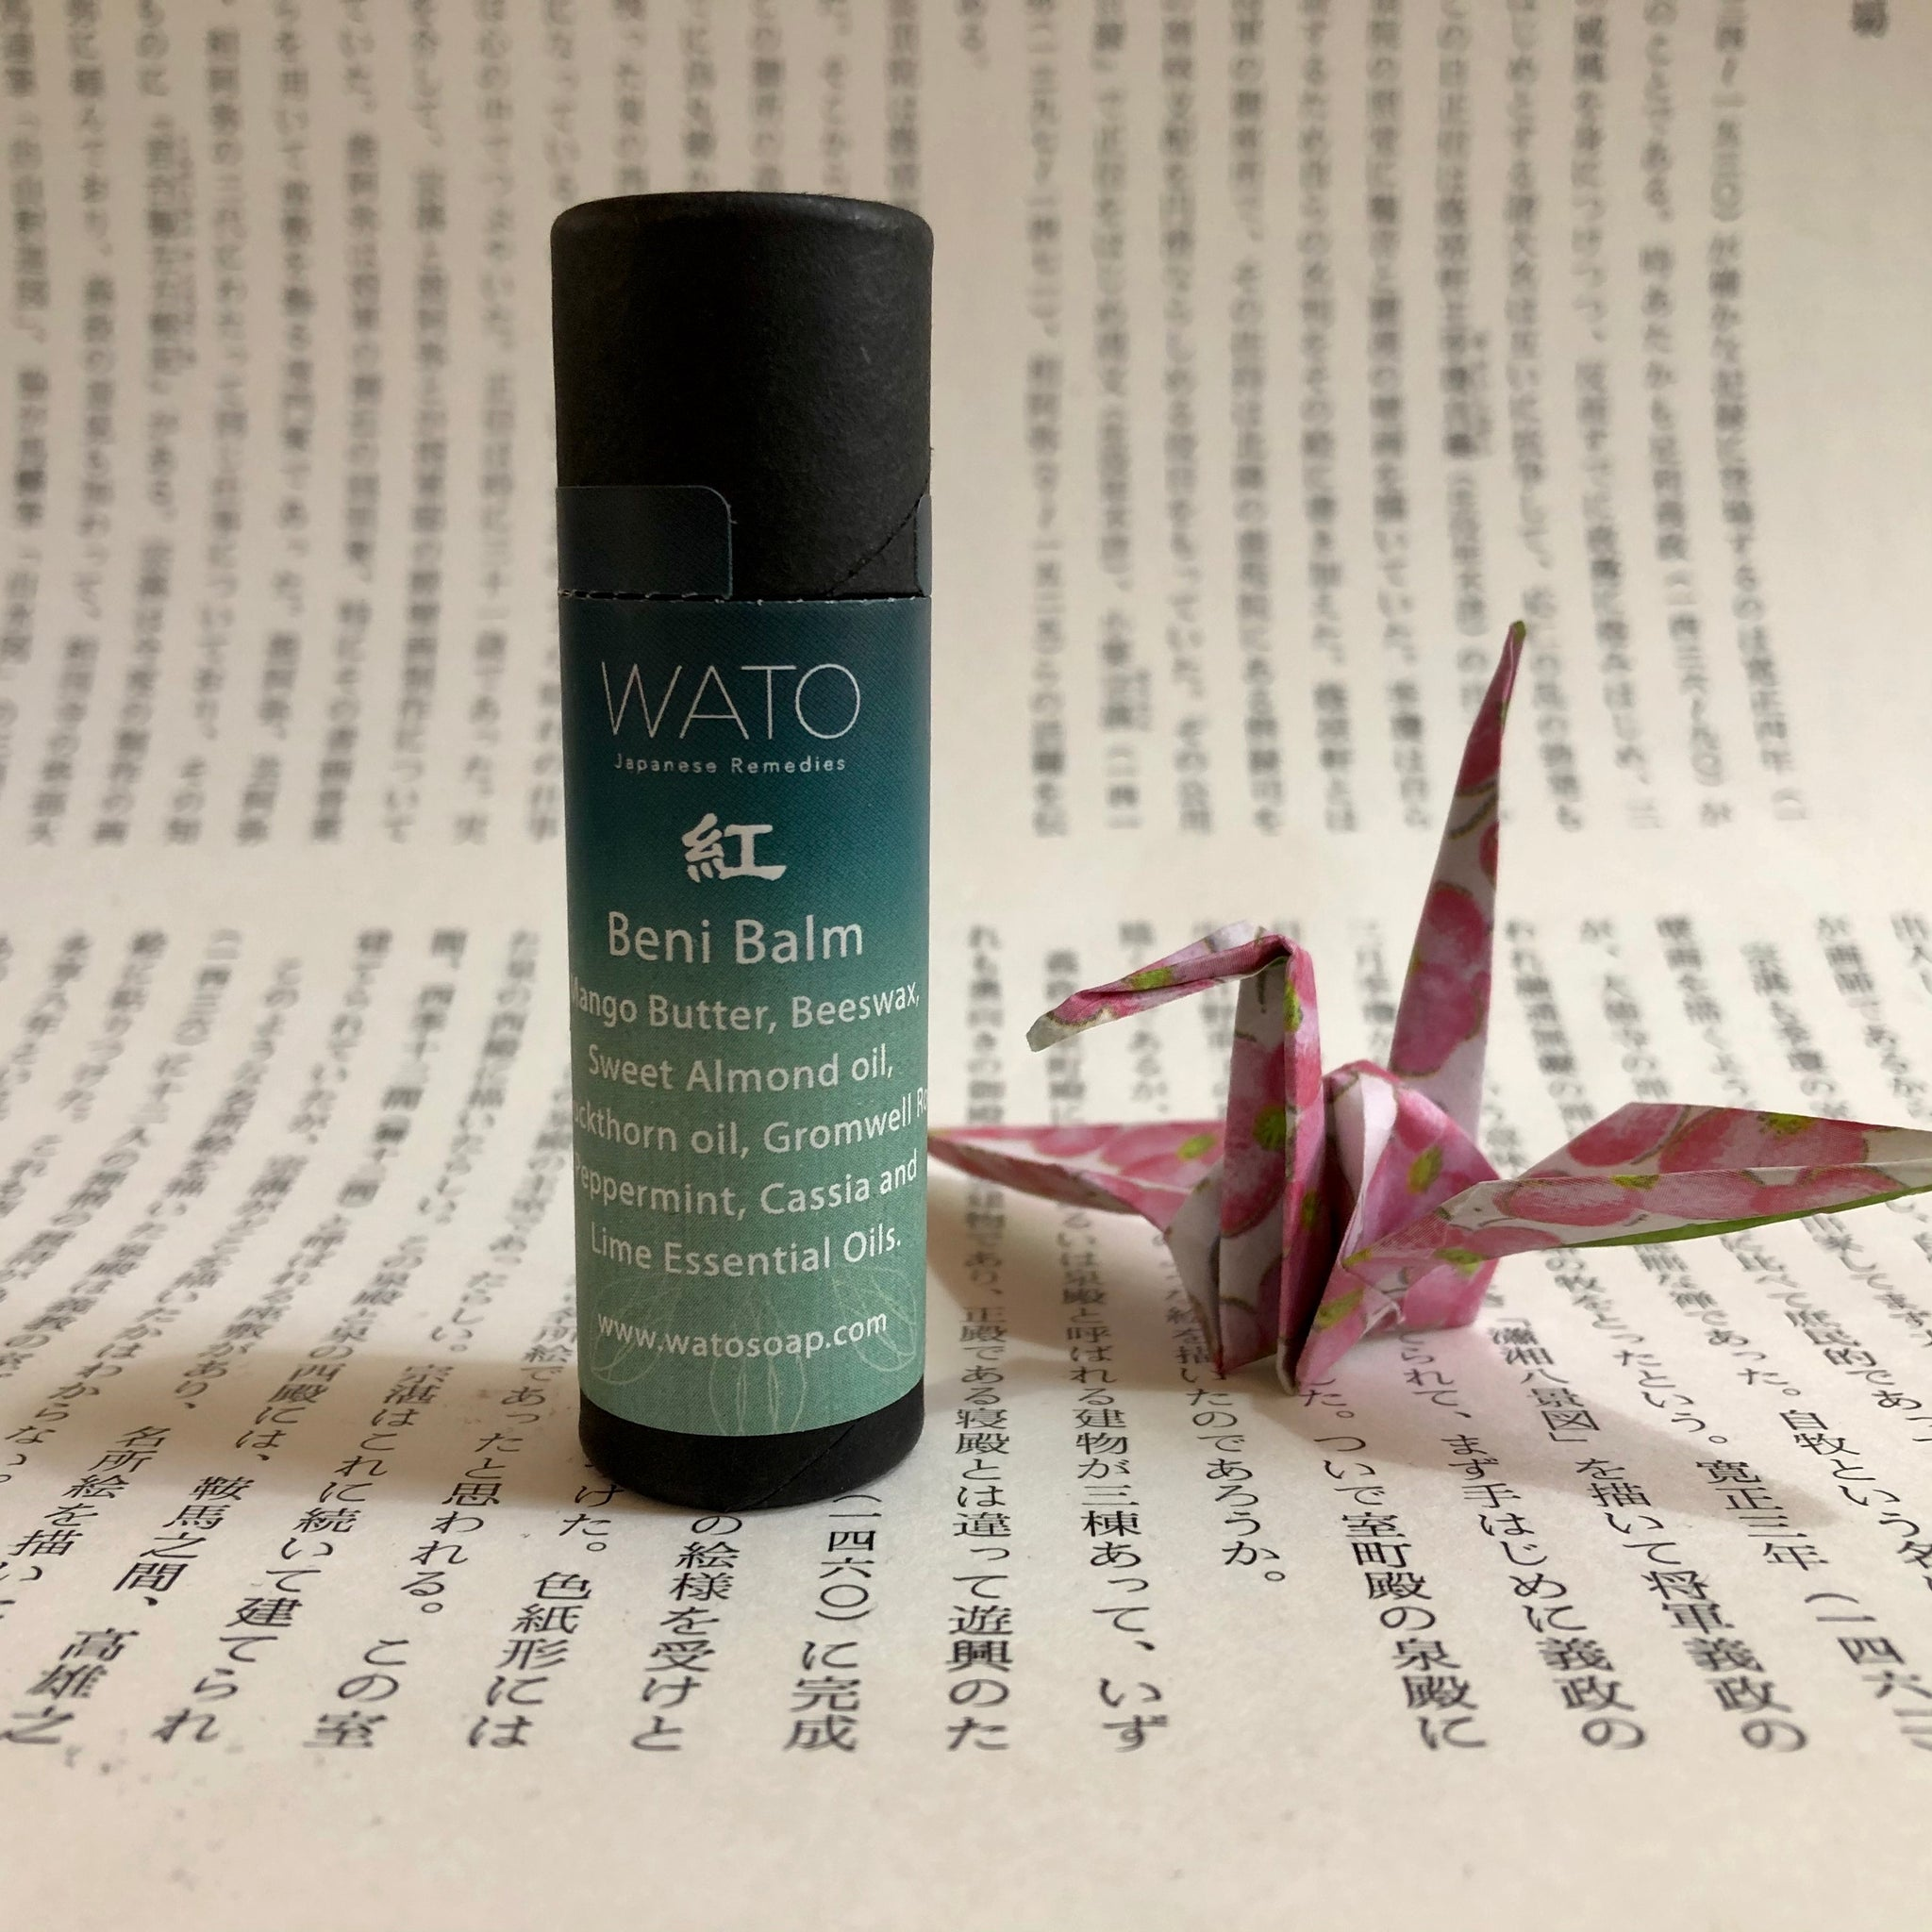 WATO JAPANESE REMEDIES BENI LIP BALM